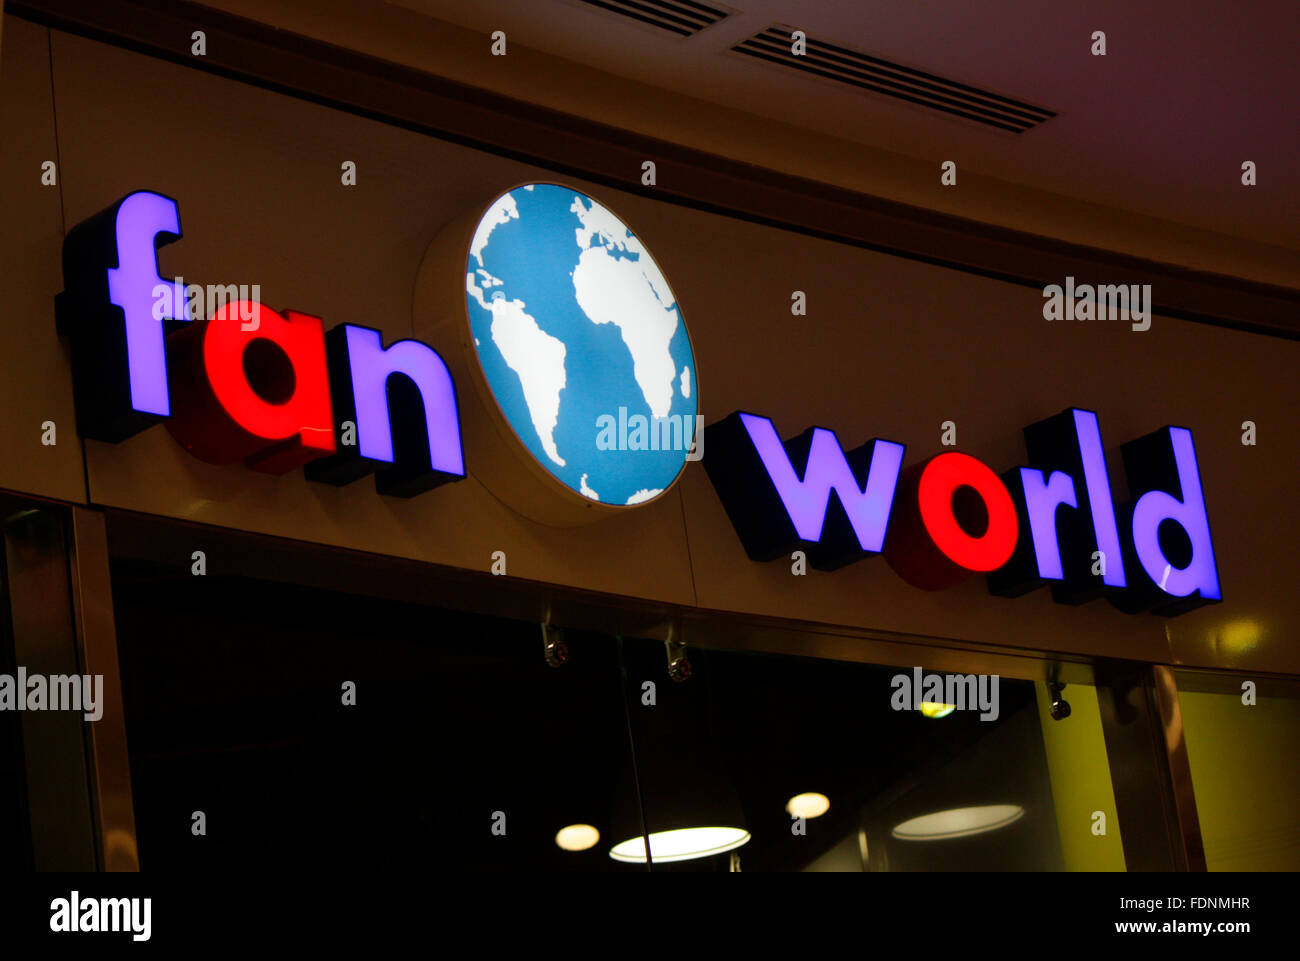 Markenname: 'Fan World', Berlin. - Stock Image